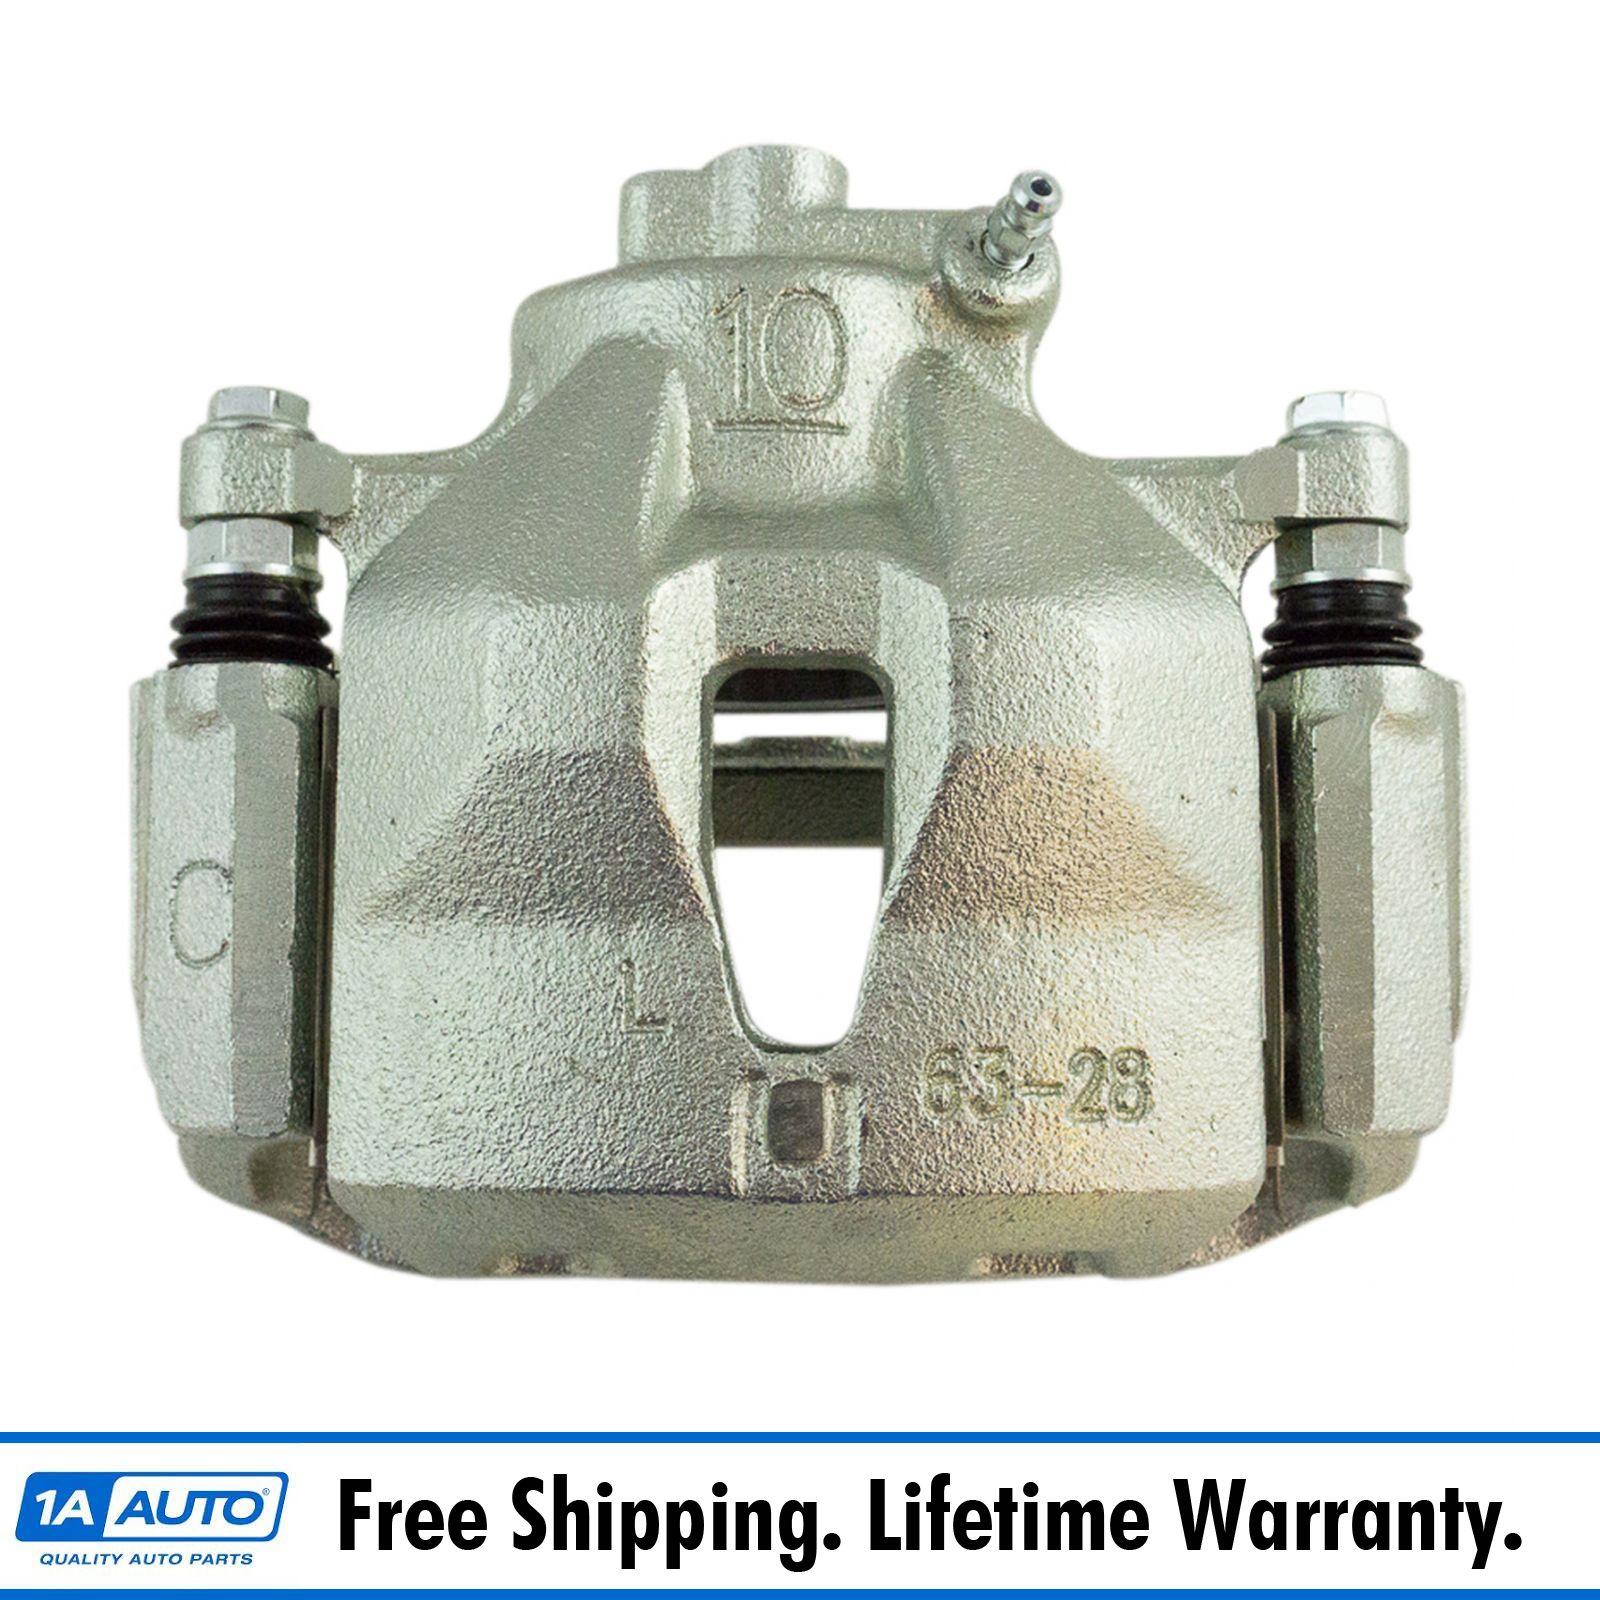 Rear Ceramic Brake Pads 2SET For Ford Expedition Centric Front